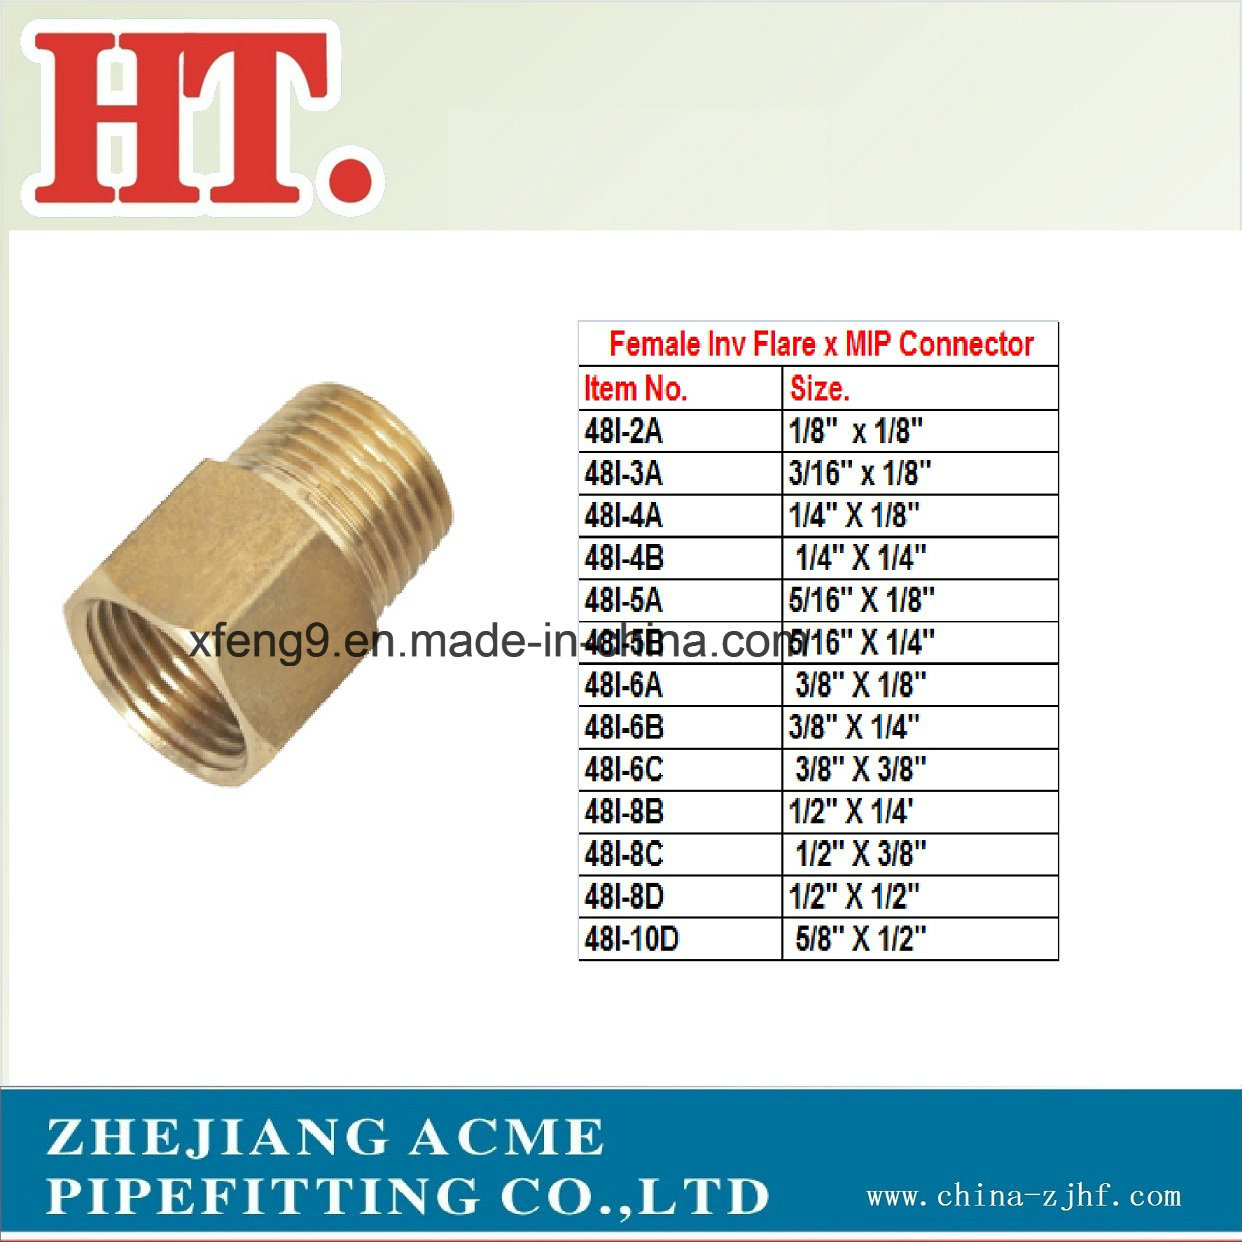 American Brass Female Inv Flare X Mip Connector Fitting